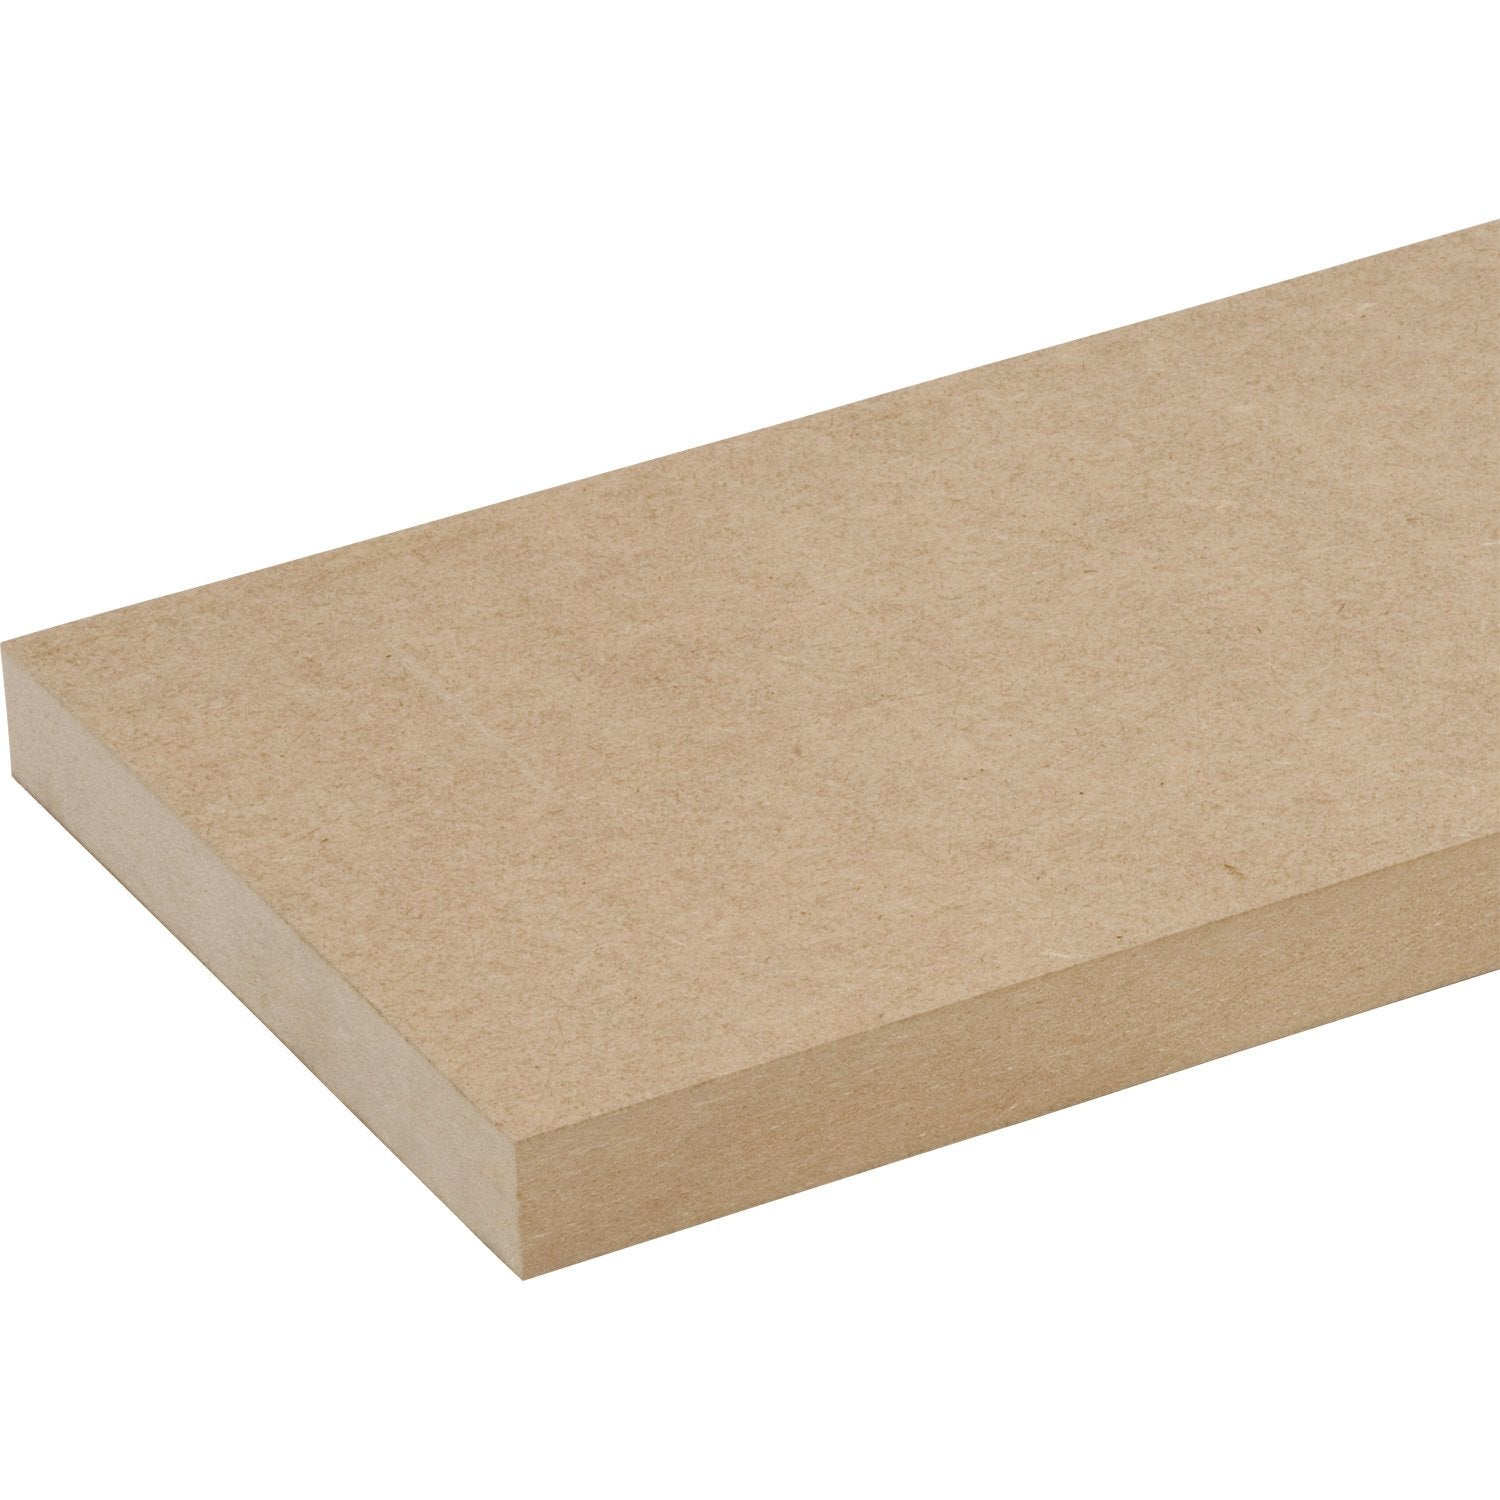 Tablette mdf spaceo brut 250x20cm p 28mm leroy merlin for Tablette spaceo leroy merlin